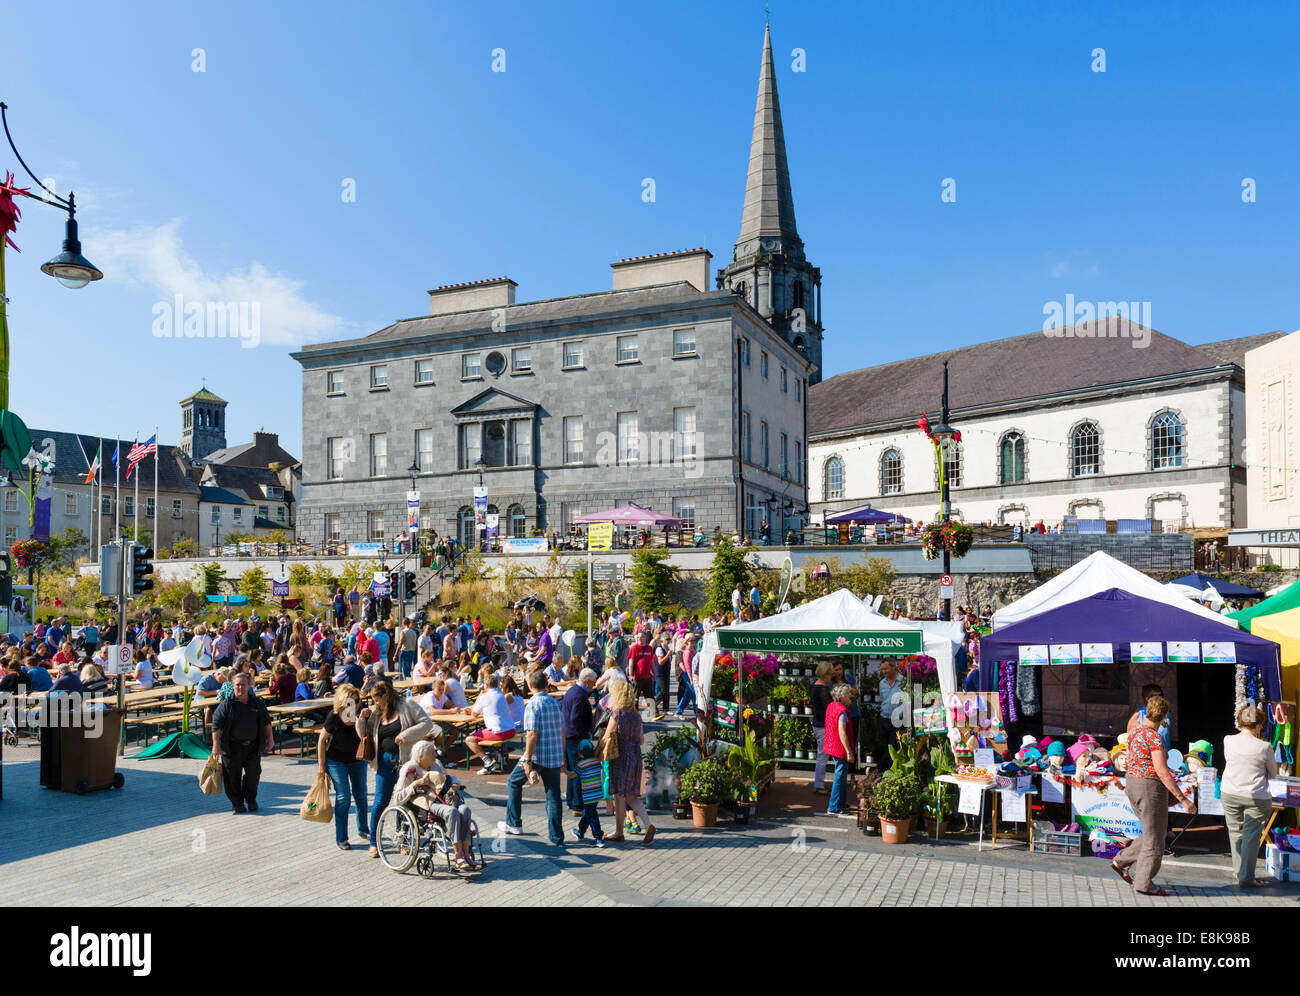 Parnell Street looking towards Bishop's Palace during Harvest Festival in Sept 2014, Waterford City, County - Stock Image